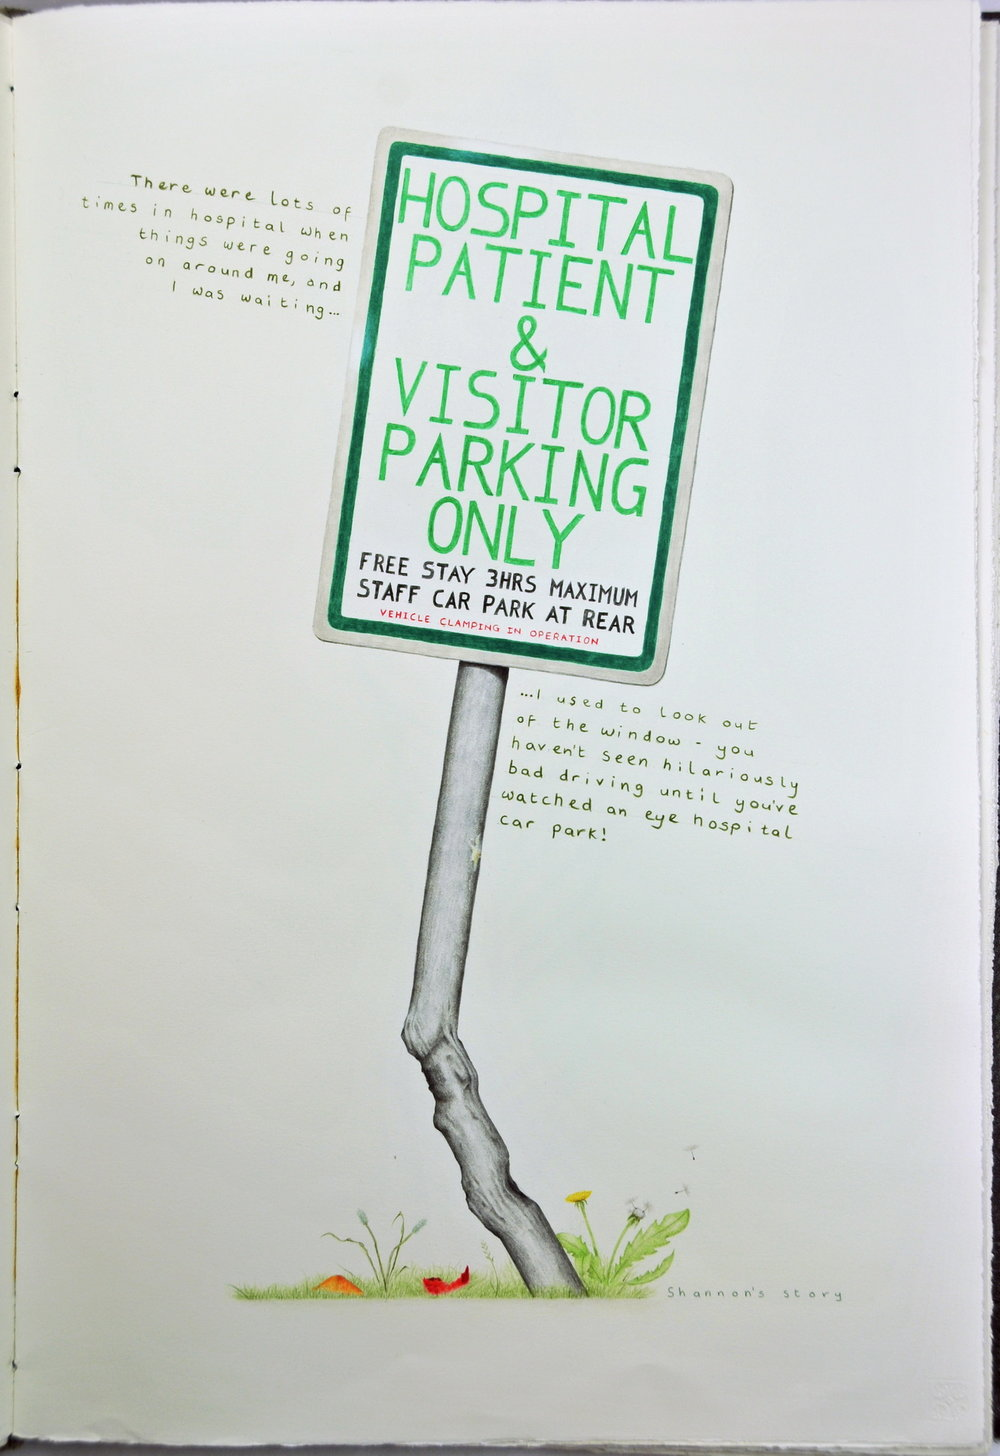 05_Chp1-You-are-here_P3_Hospital_Parking_Sign_resize.jpg